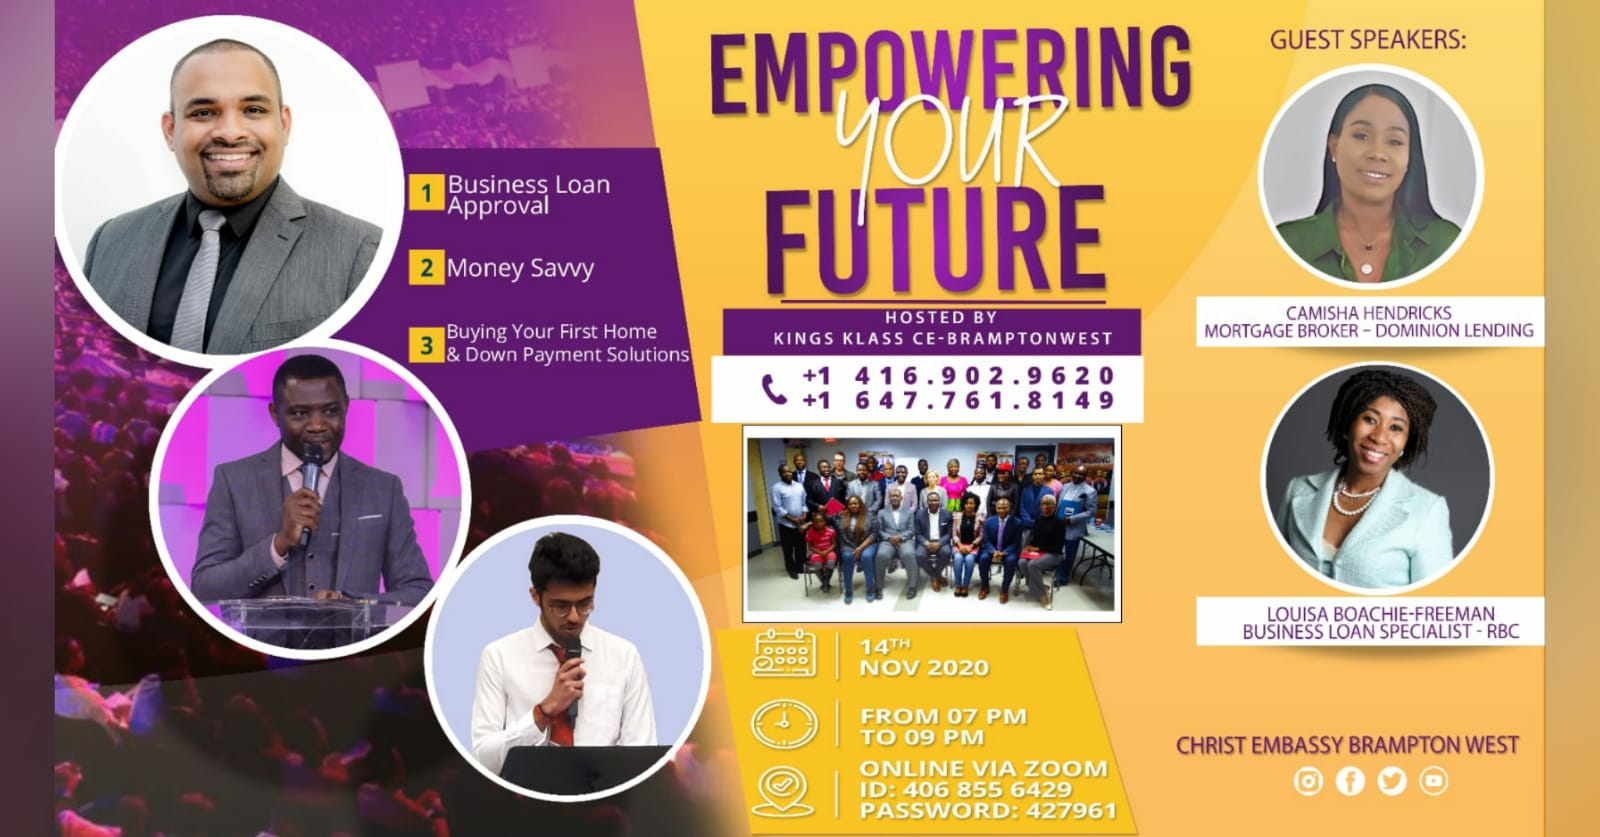 EMPOWERING YOUR FUTURE. Covid-19 should